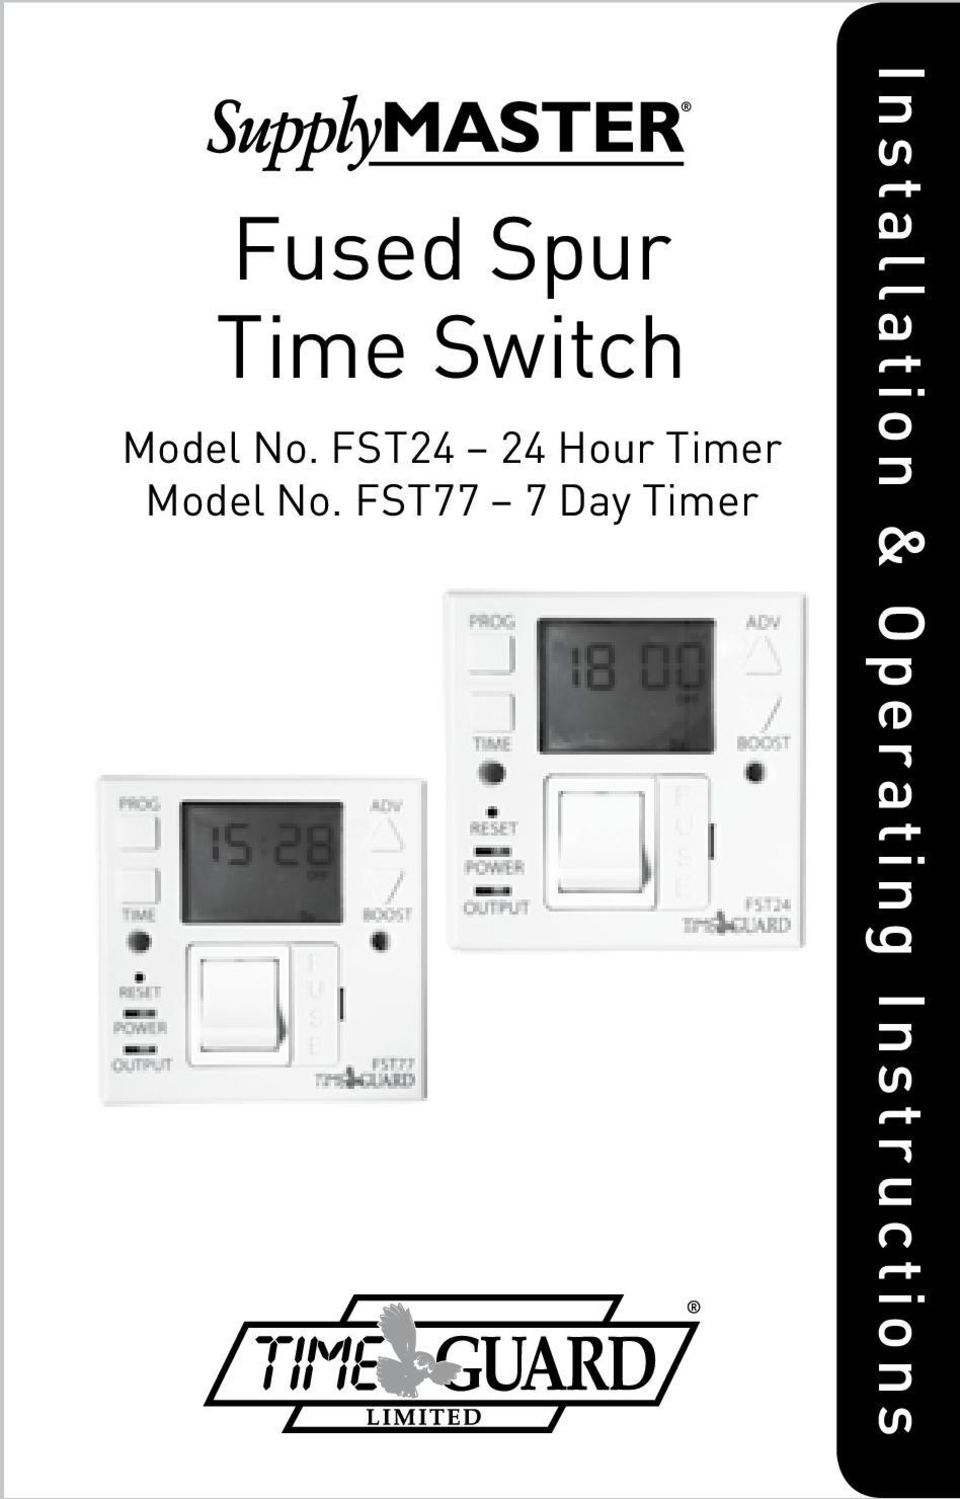 Fused Spur Time Switch Pdf 1 Gang 2 Wire 10a No Neutral Presence Detector Timer Fst77 7 Day General